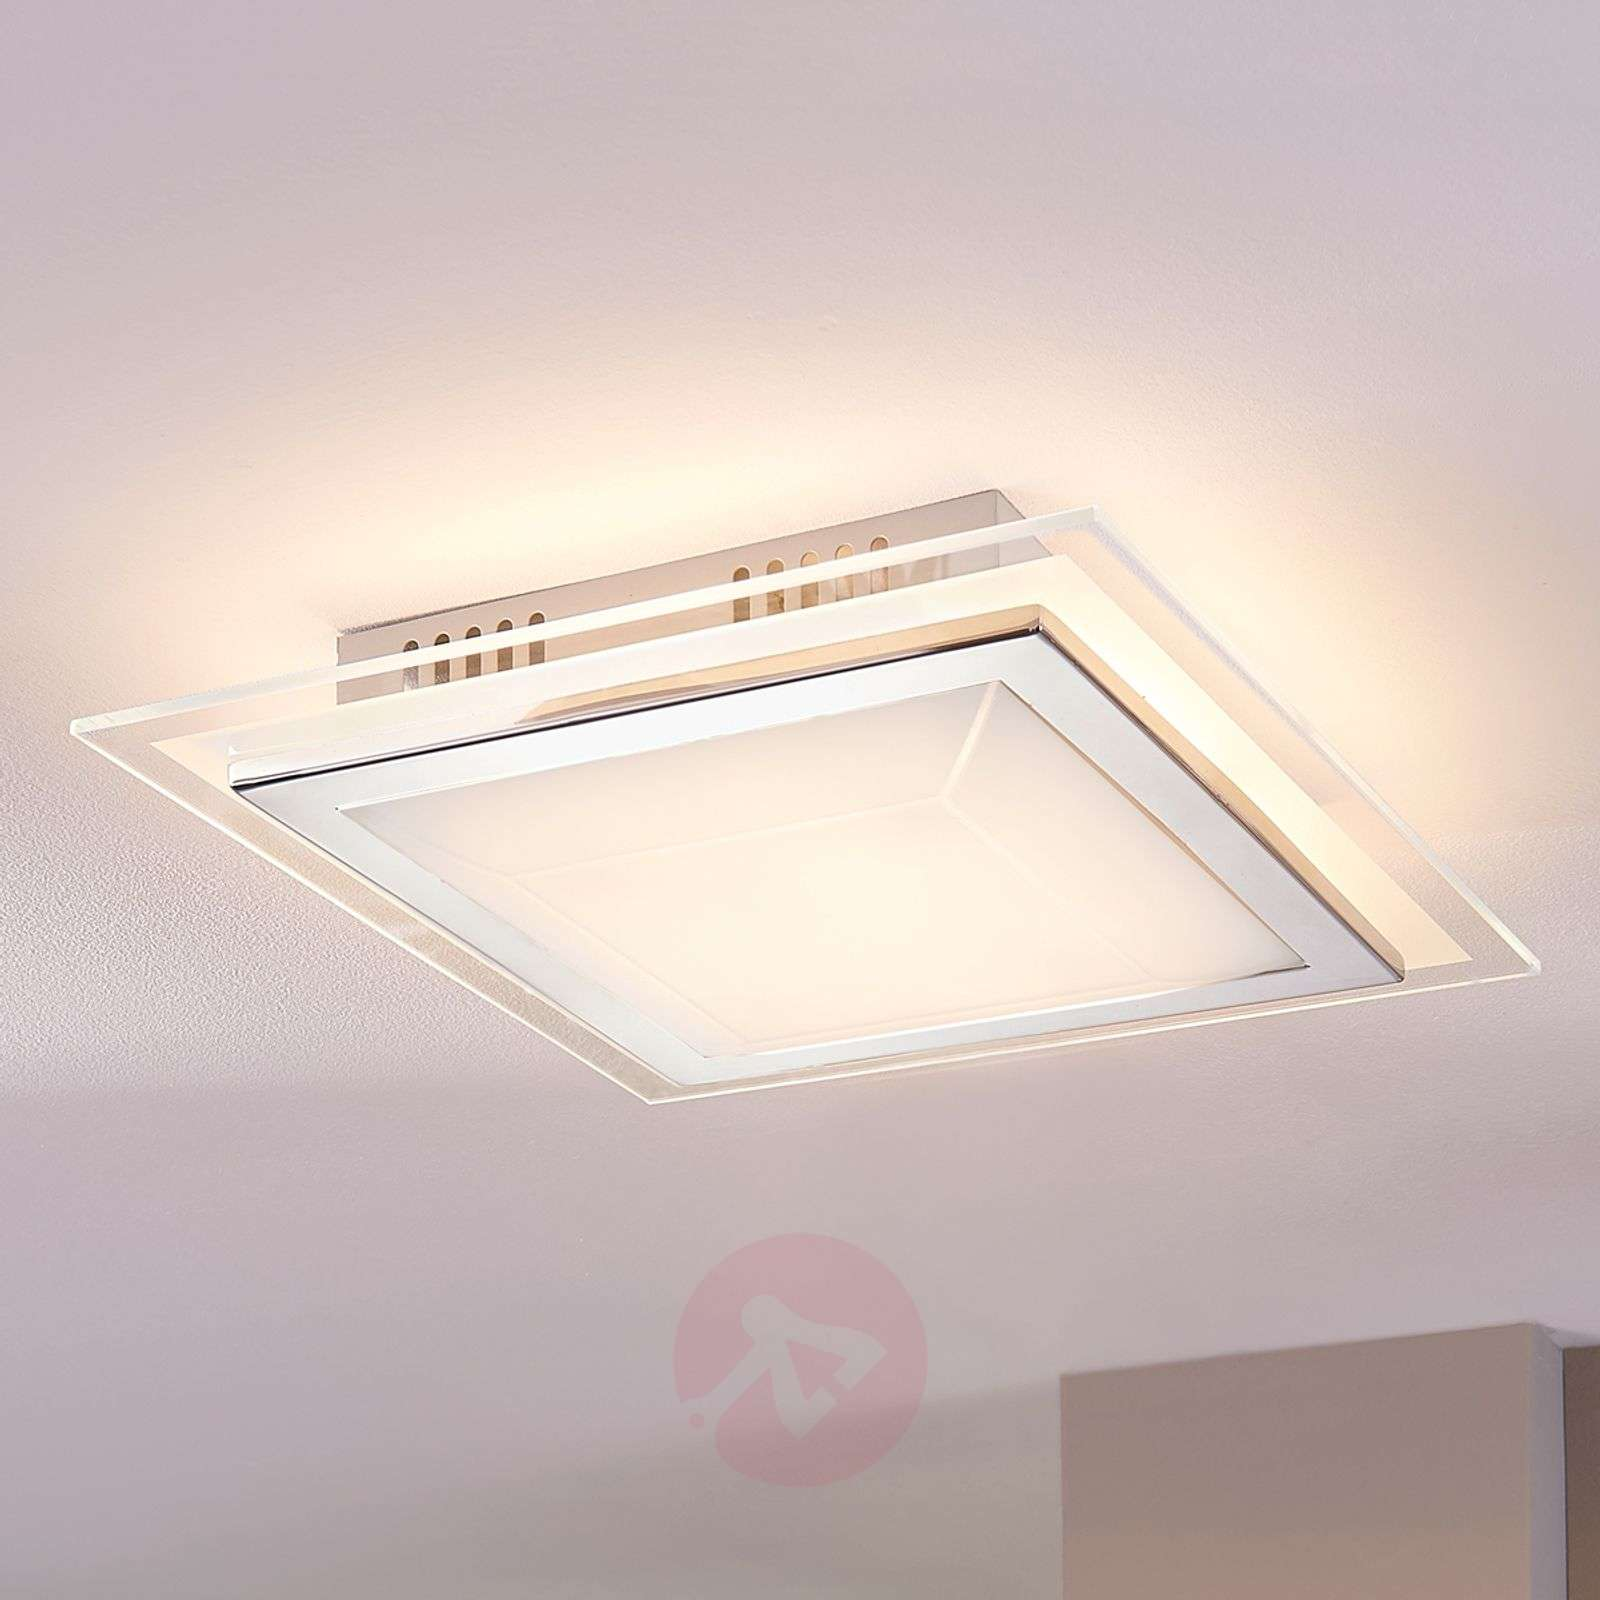 Square glass ceiling light alessio with led lights square glass ceiling light alessio with led 9620891 024 aloadofball Images